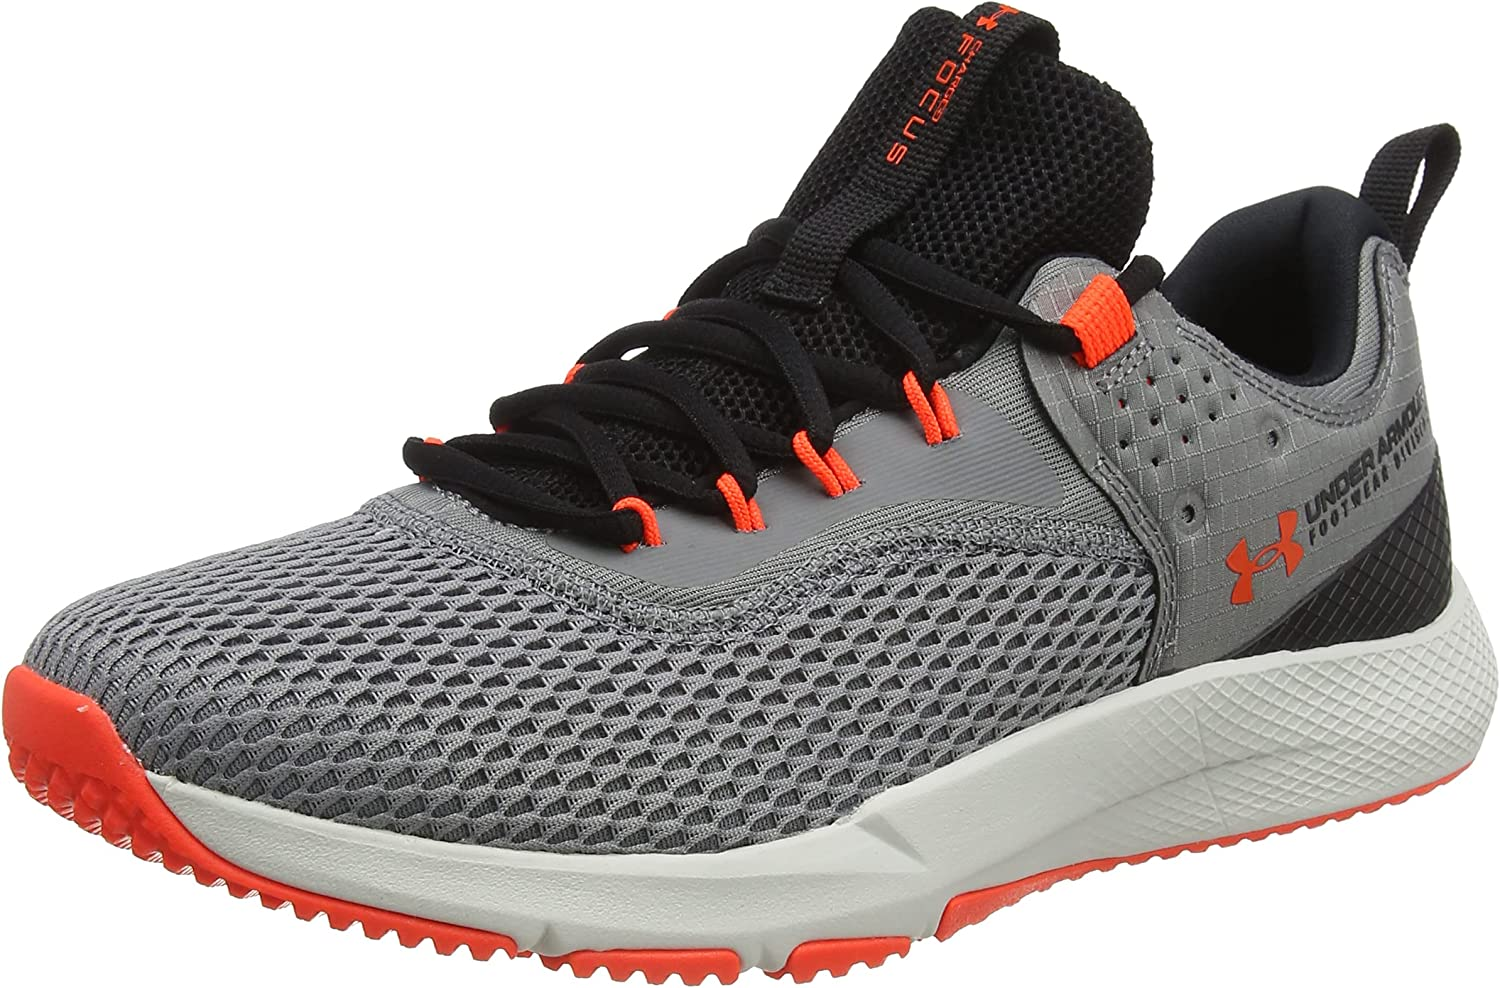 Under Armour Max 45% OFF Atlanta Mall Men's Charged Focus Trainer Cross